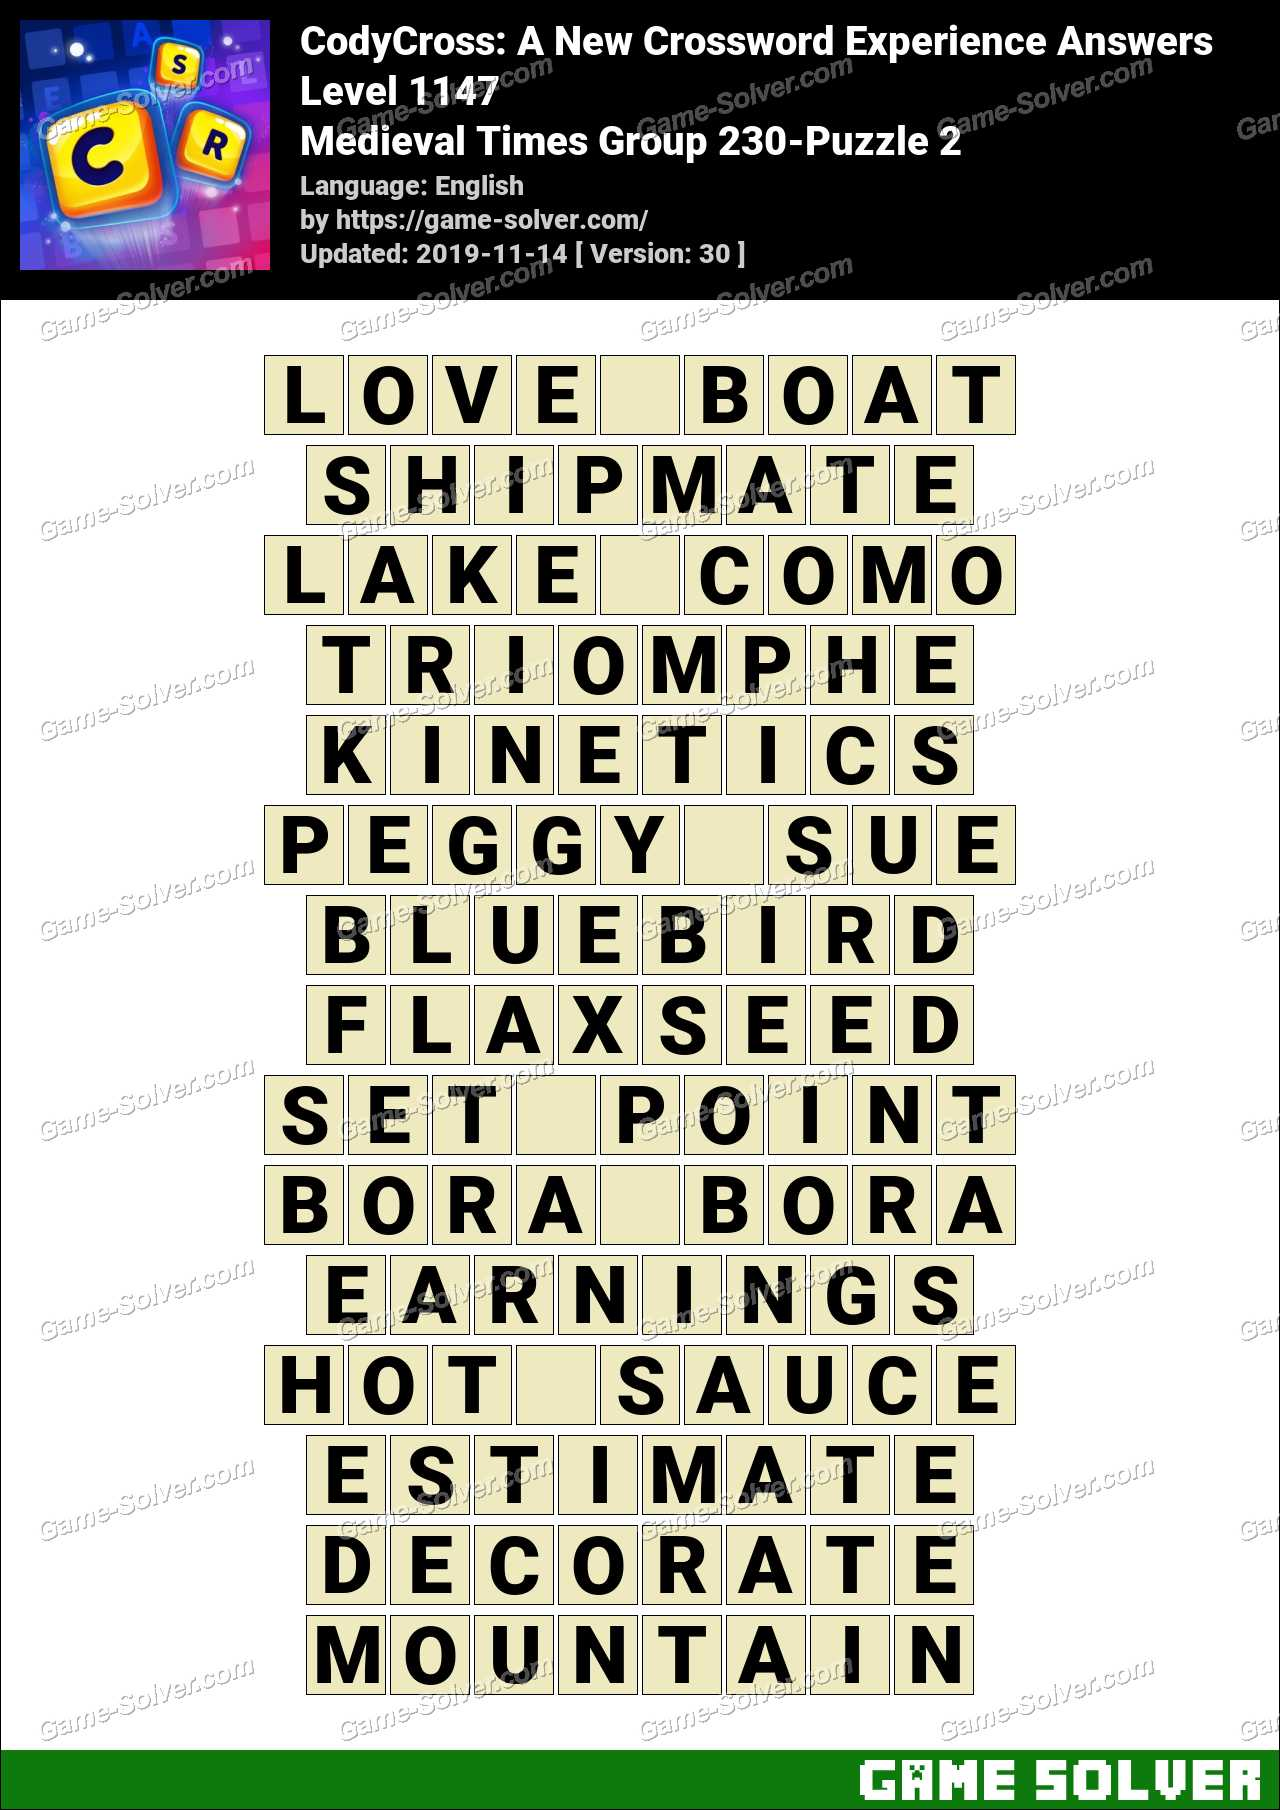 CodyCross Medieval Times Group 230-Puzzle 2 Answers